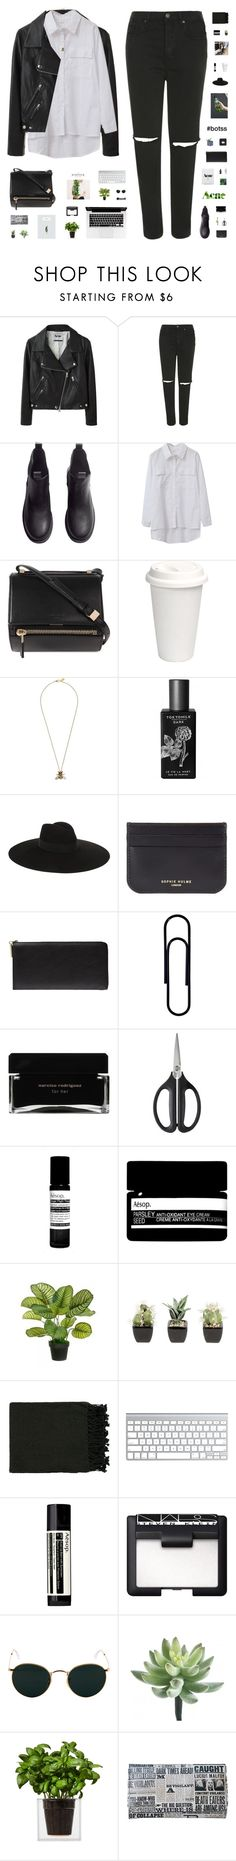 """""""SAMANTHA MARIA // #botss"""" by c-hristinep ❤ liked on Polyvore featuring Acne Studios, Topshop, H&M, Chicnova Fashion, PSST, Givenchy, Jigsaw, TokyoMilk, Yves Saint Laurent and Sophie Hulme"""